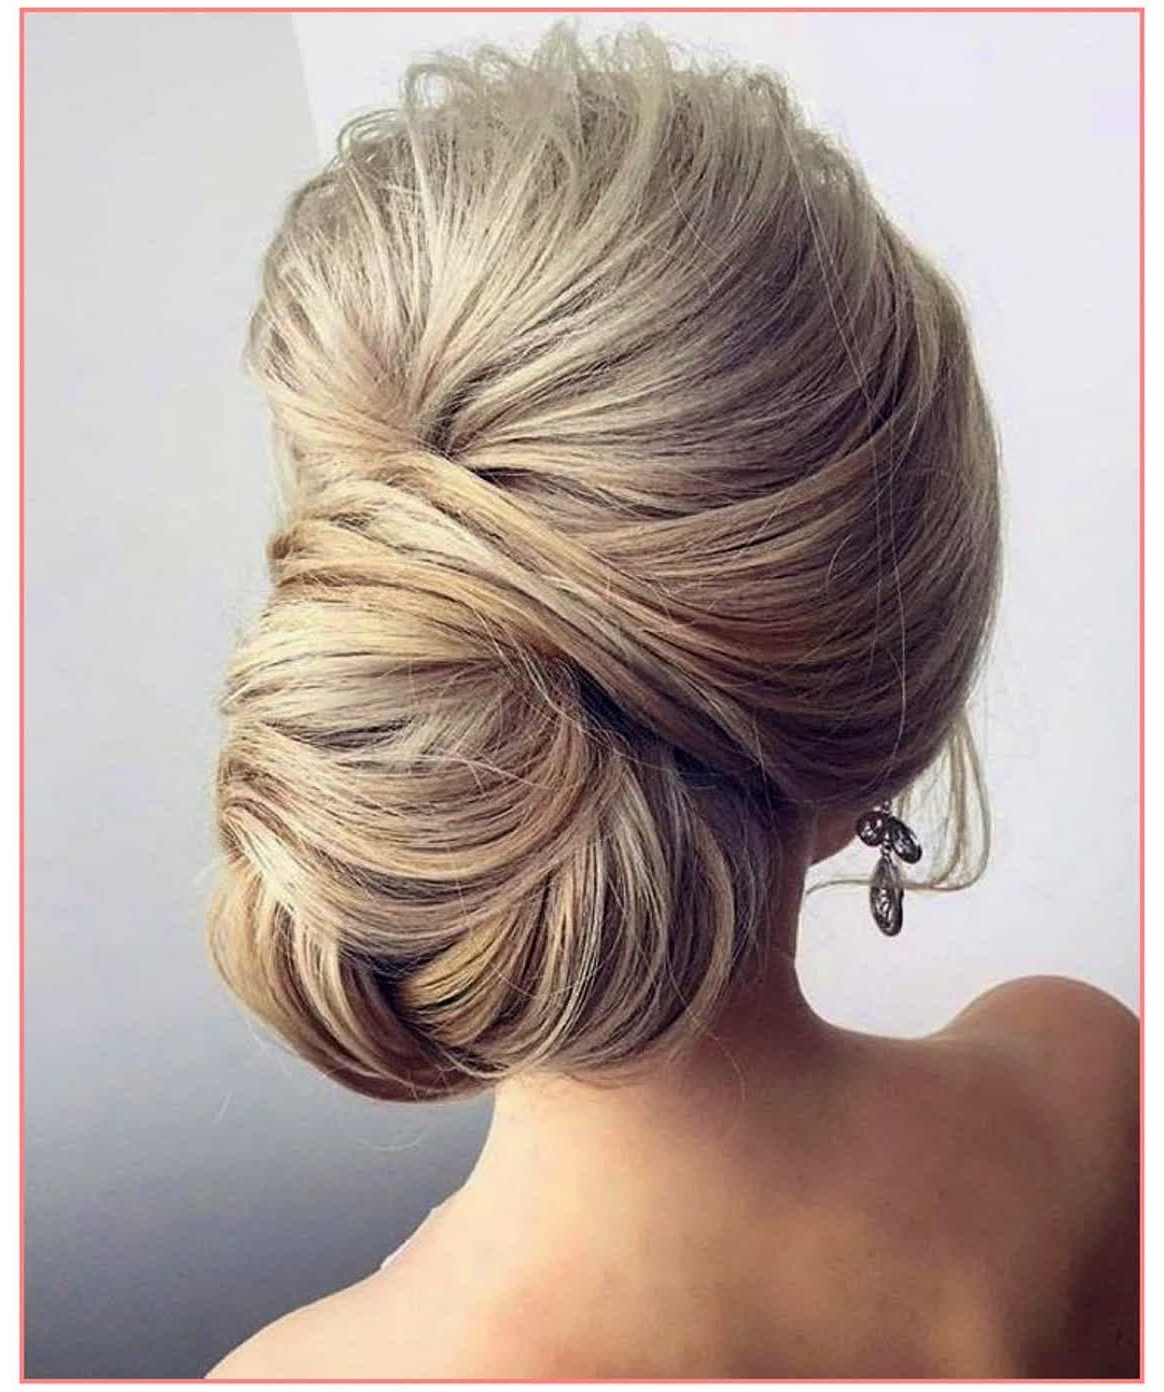 Beautiful Hairstyles Wedding Hairstyles Side Chignon – Best Throughout Favorite Chignon Wedding Hairstyles (View 3 of 15)